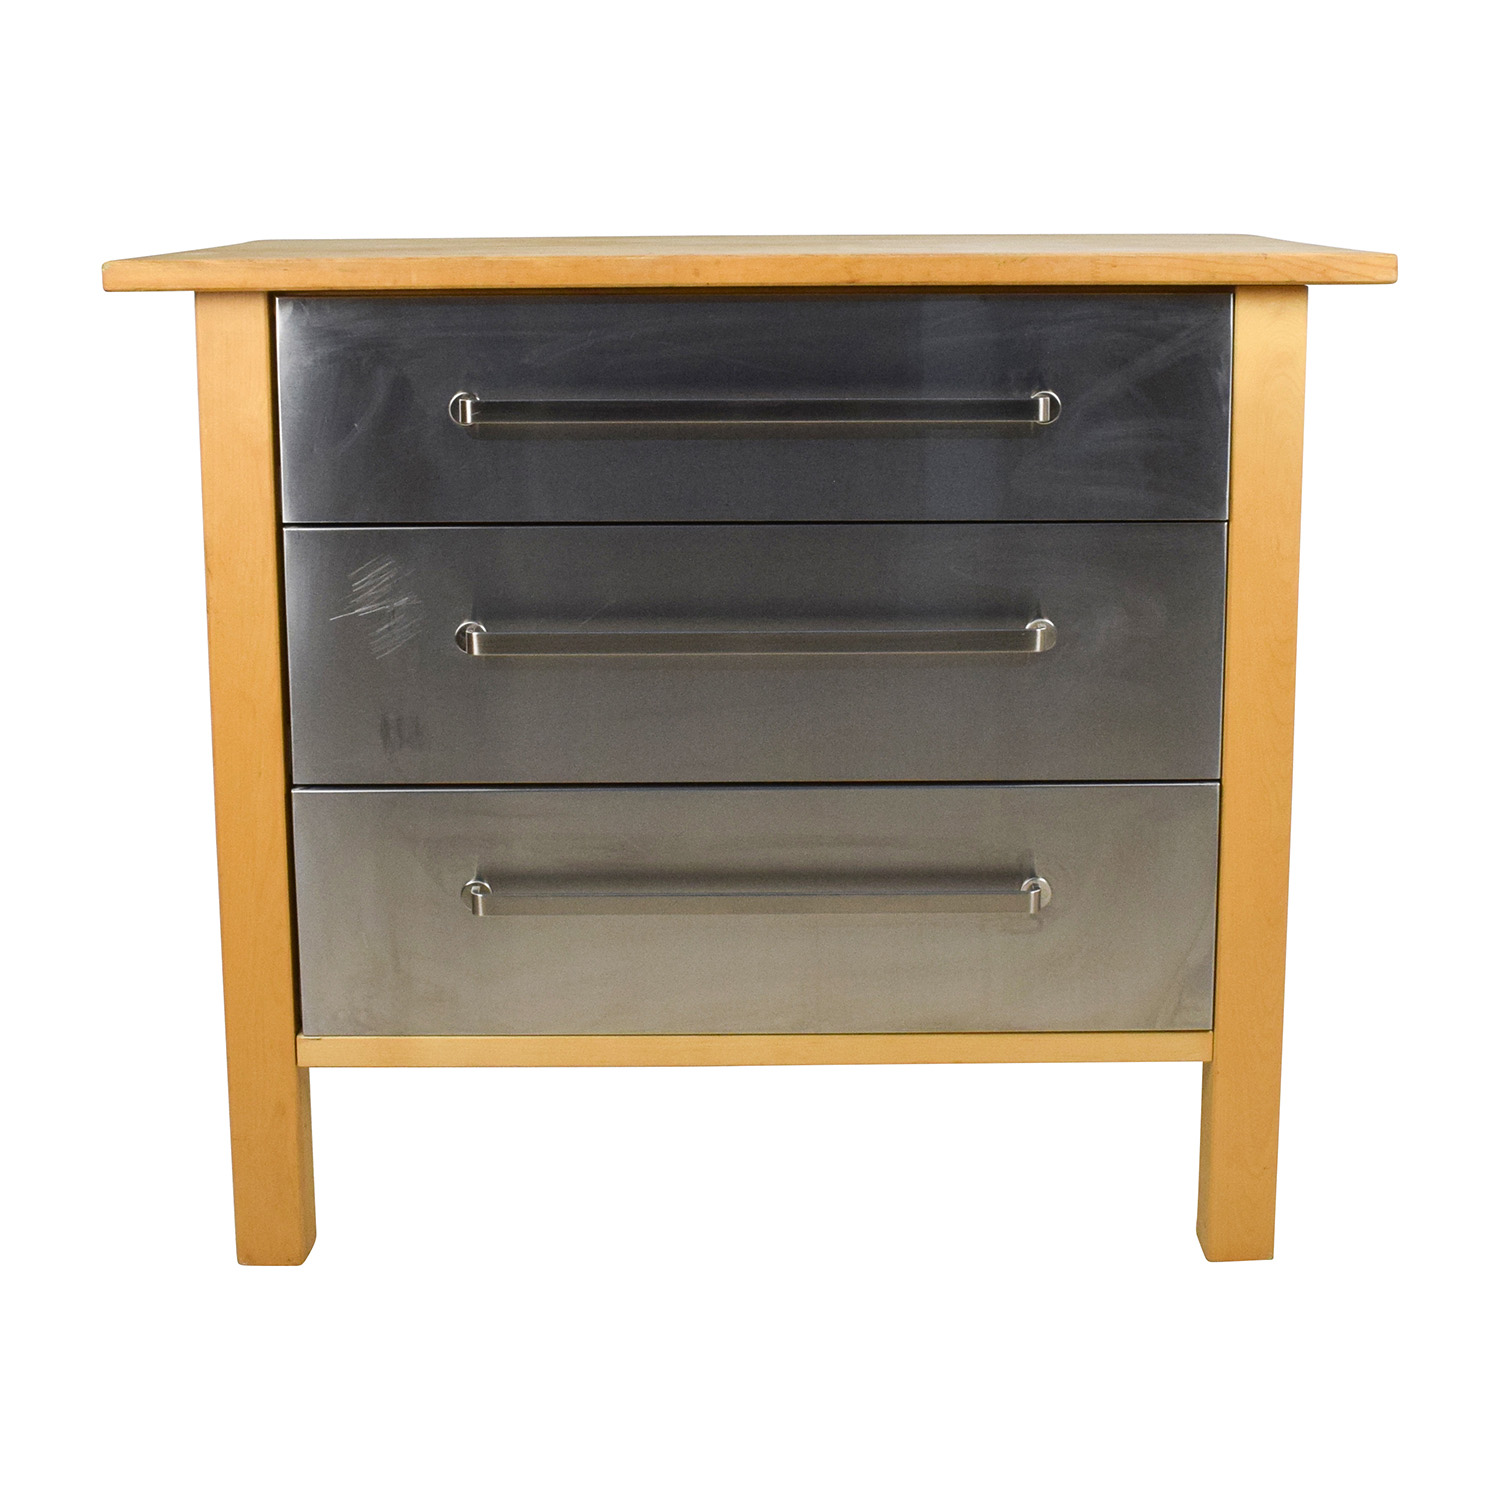 ikea kitchen table with drawers appliances pay monthly image to u